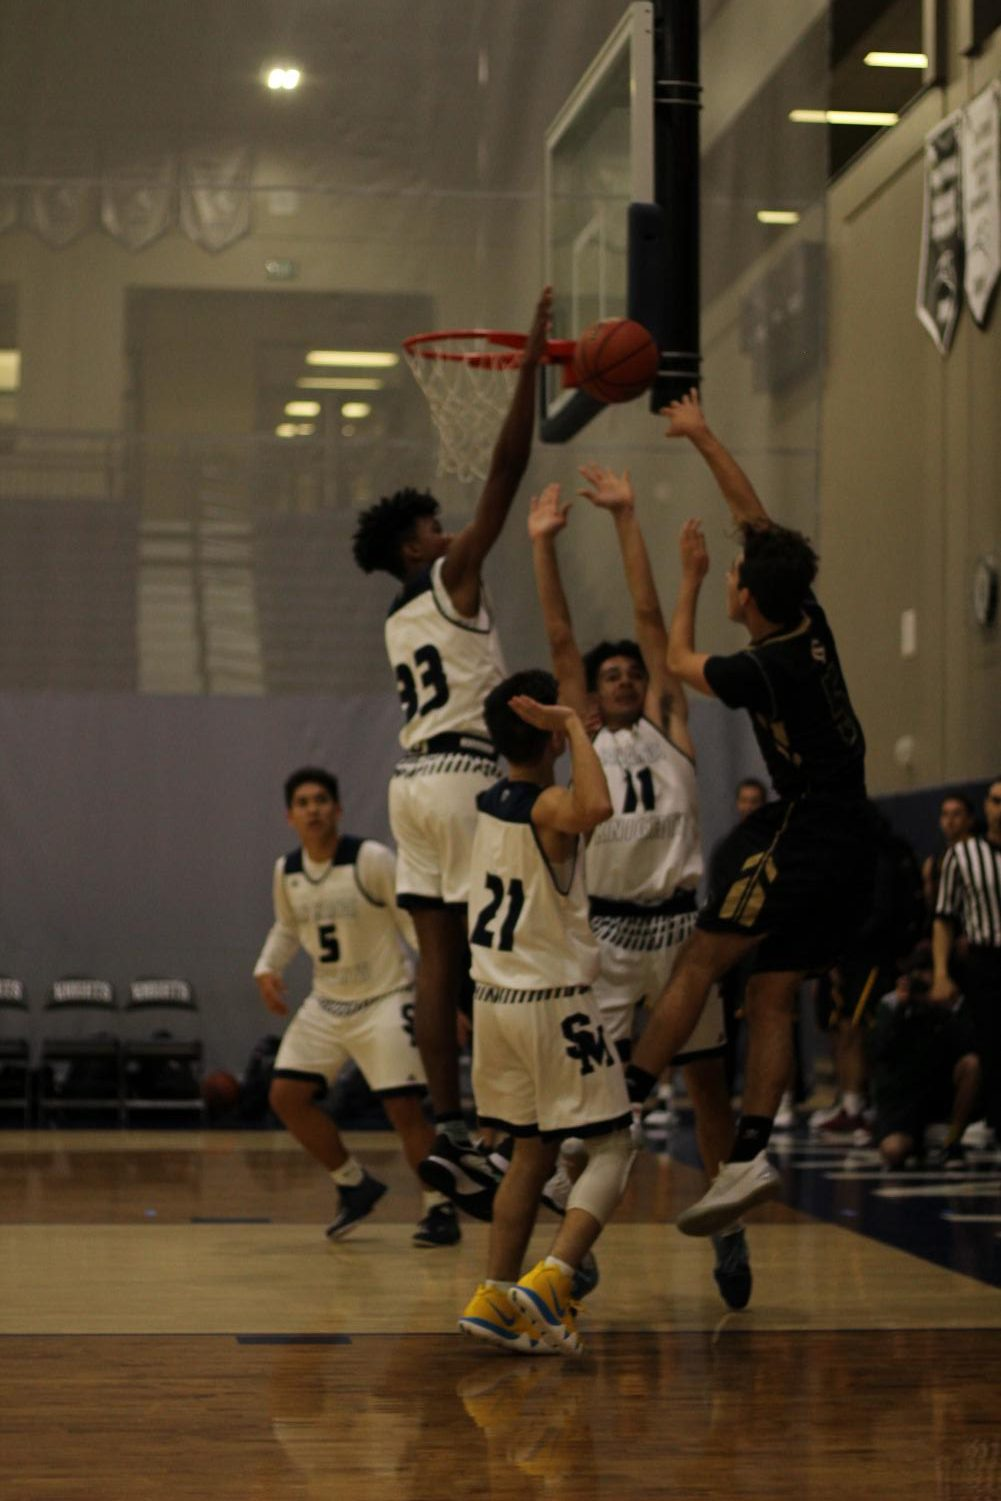 As+a+Sage+Creek+varsity+player+jumps+up+to+shoot+the+ball%2C+he+is+met+with+an+attempted+block+by+the+San+Marcos+team.+